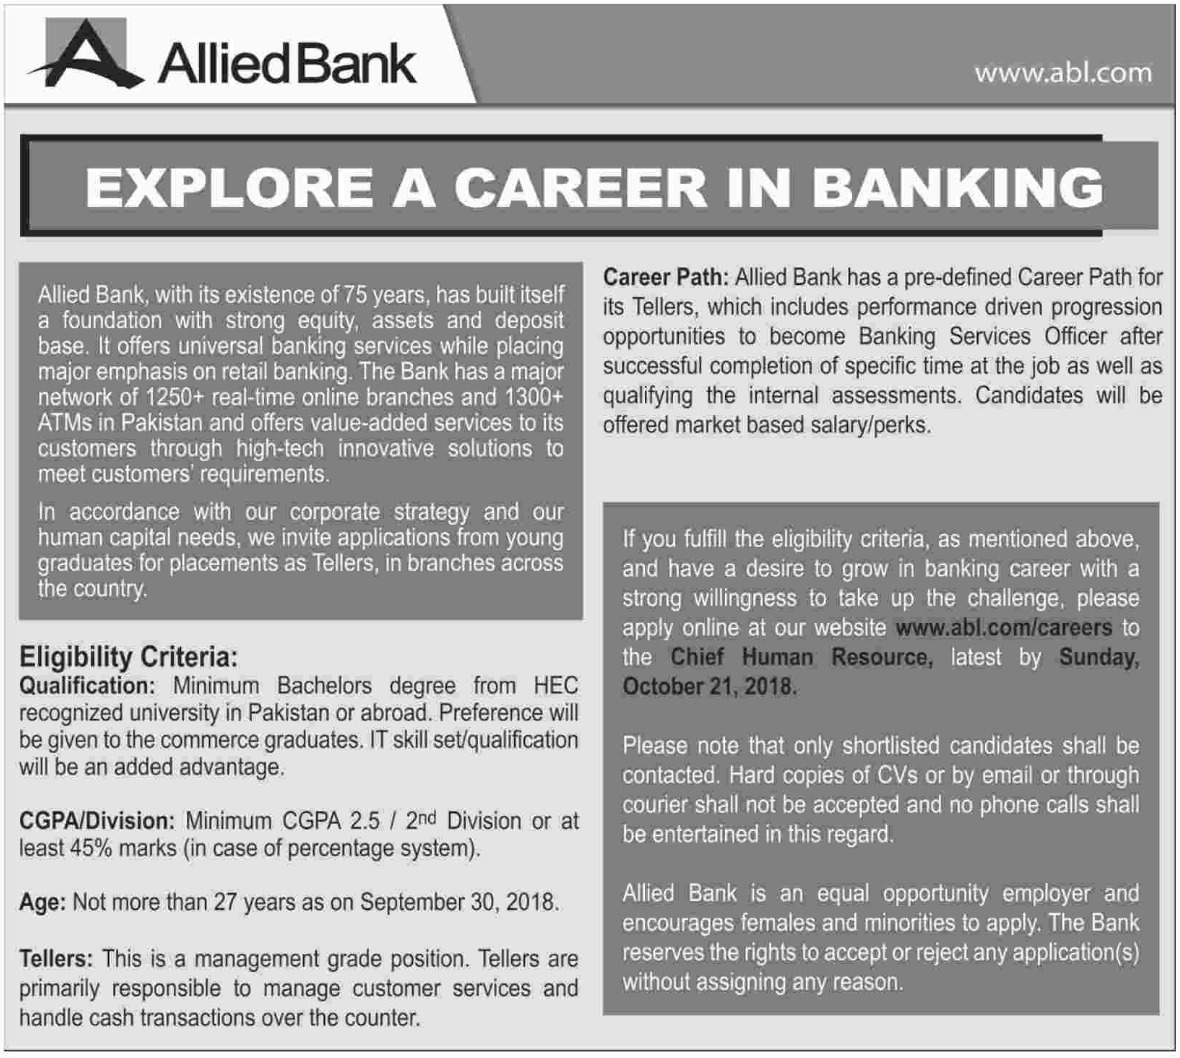 Allied Bank Ltd ABL Latest Jobs 14 October 2018